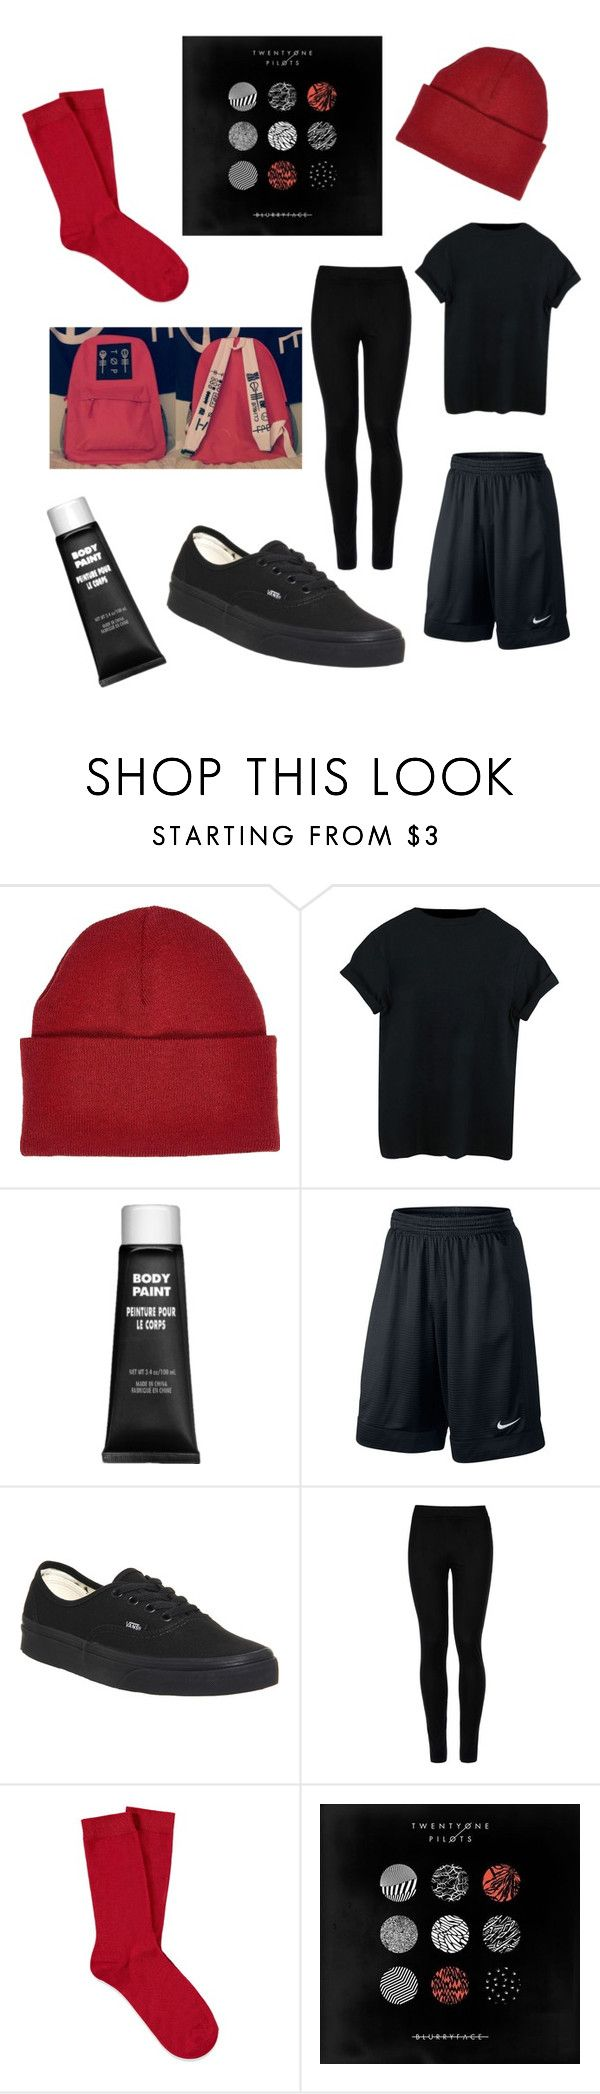 """""""Twenty one pilots Blurryface"""" by lea113111 ❤ liked on Polyvore featuring River Island, NIKE, Vans, Wolford and Forever 21"""